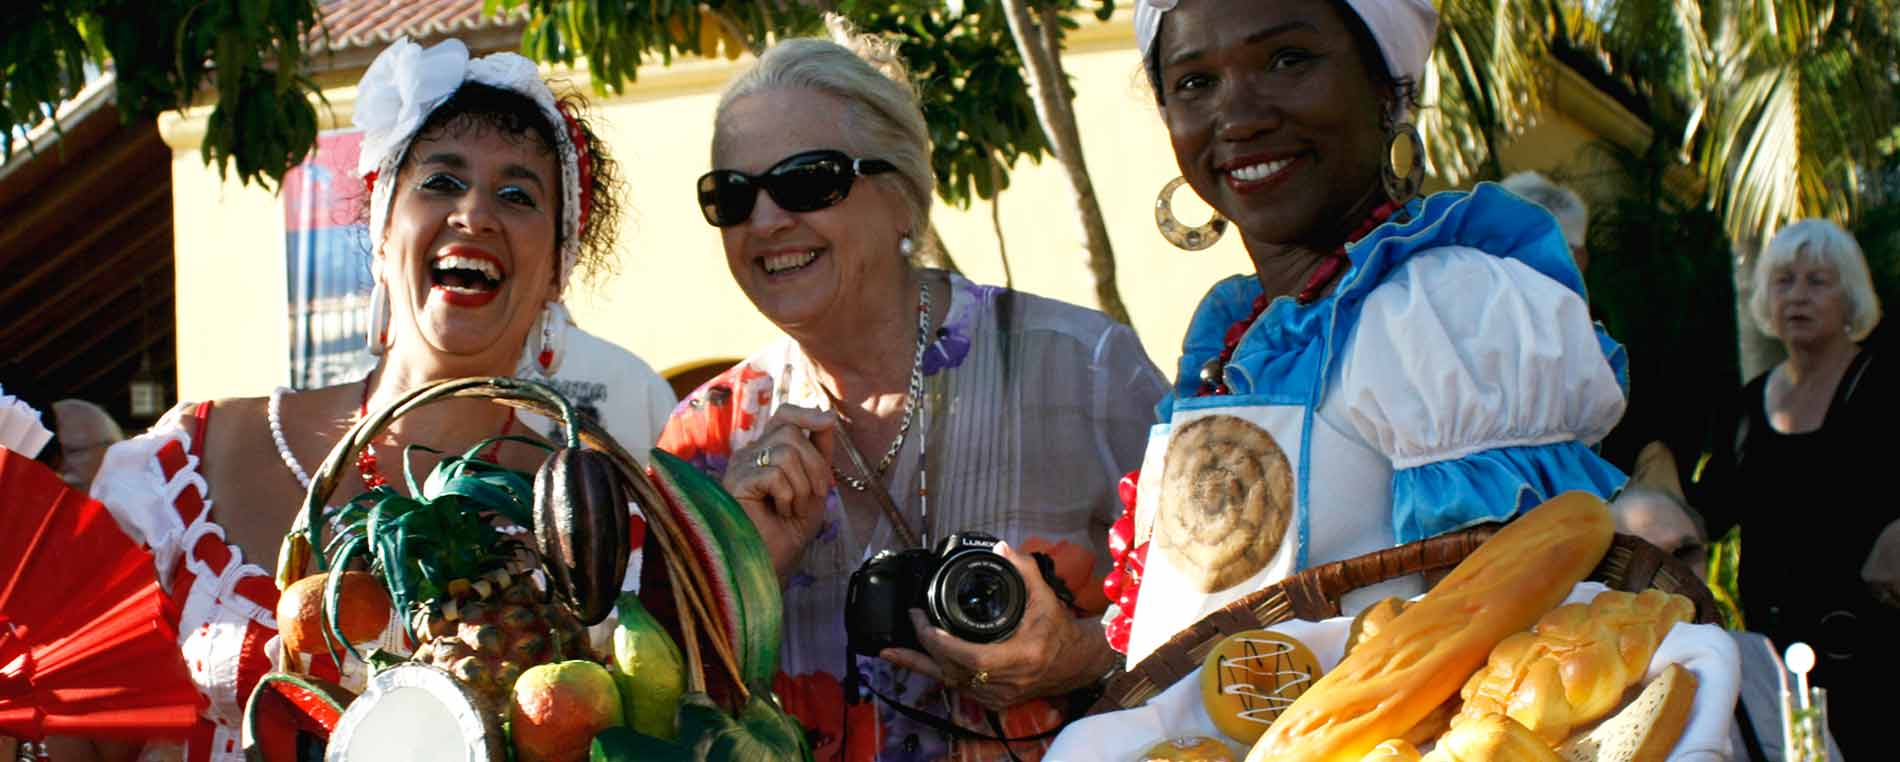 Photo of Cultural activity organized by Latin America Travel